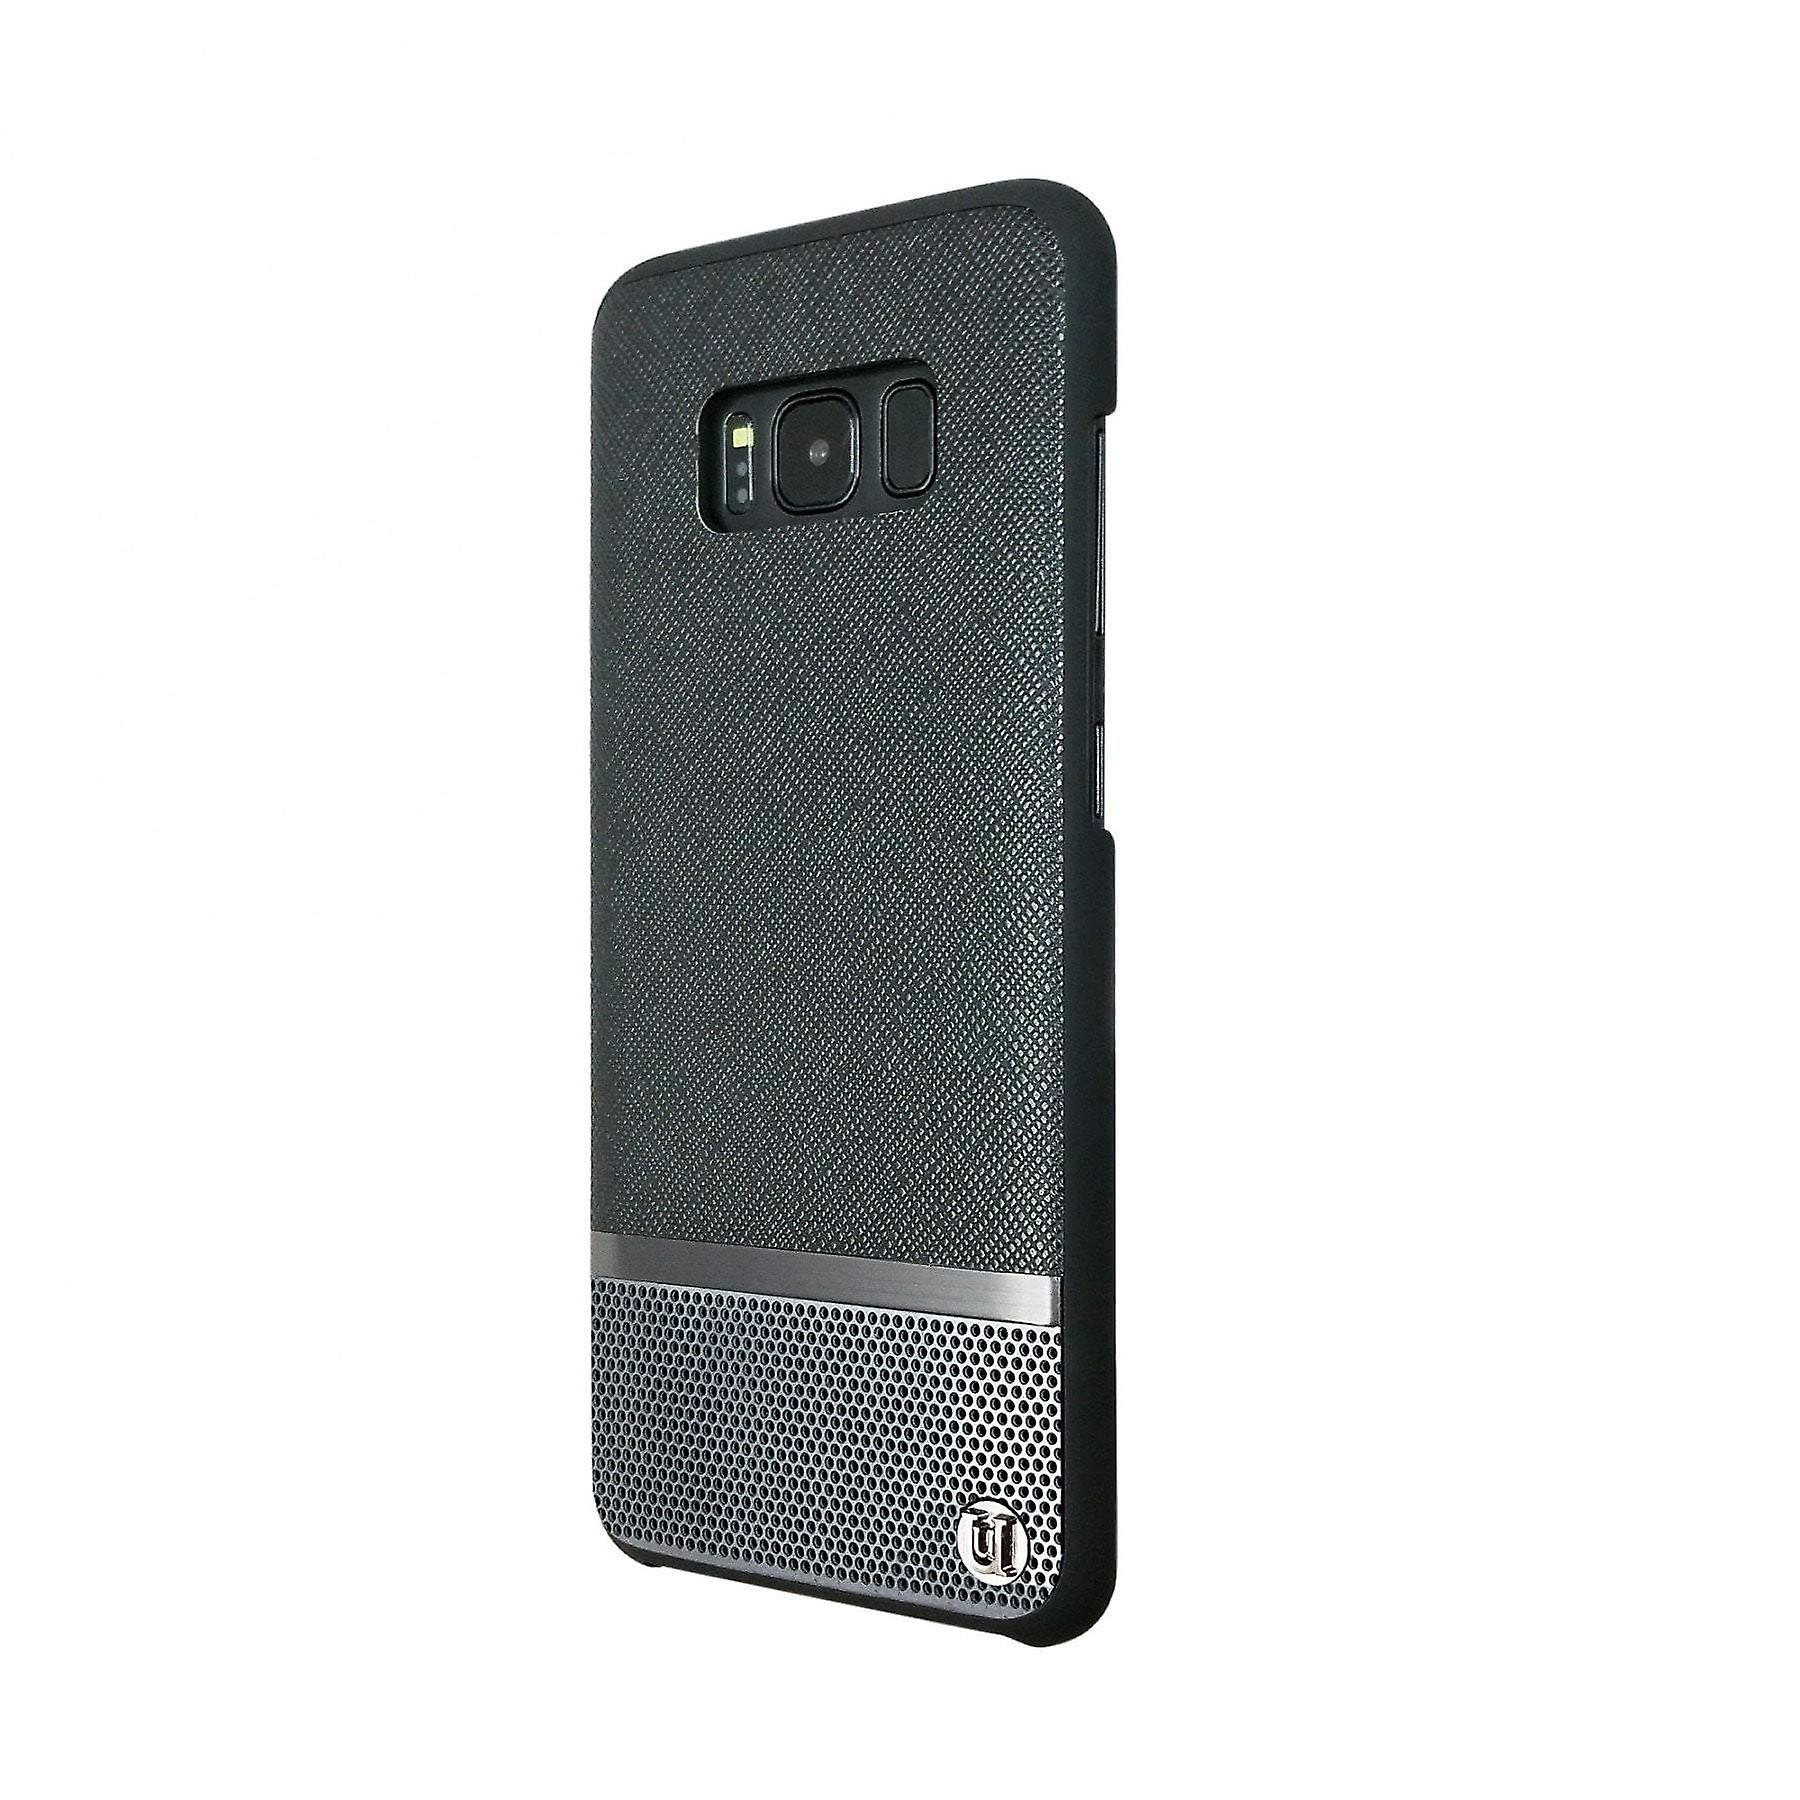 Samsung Galaxy S8 Case Mode Luxe Saffiano/Perforated Hard Shell Black/Gunmetal